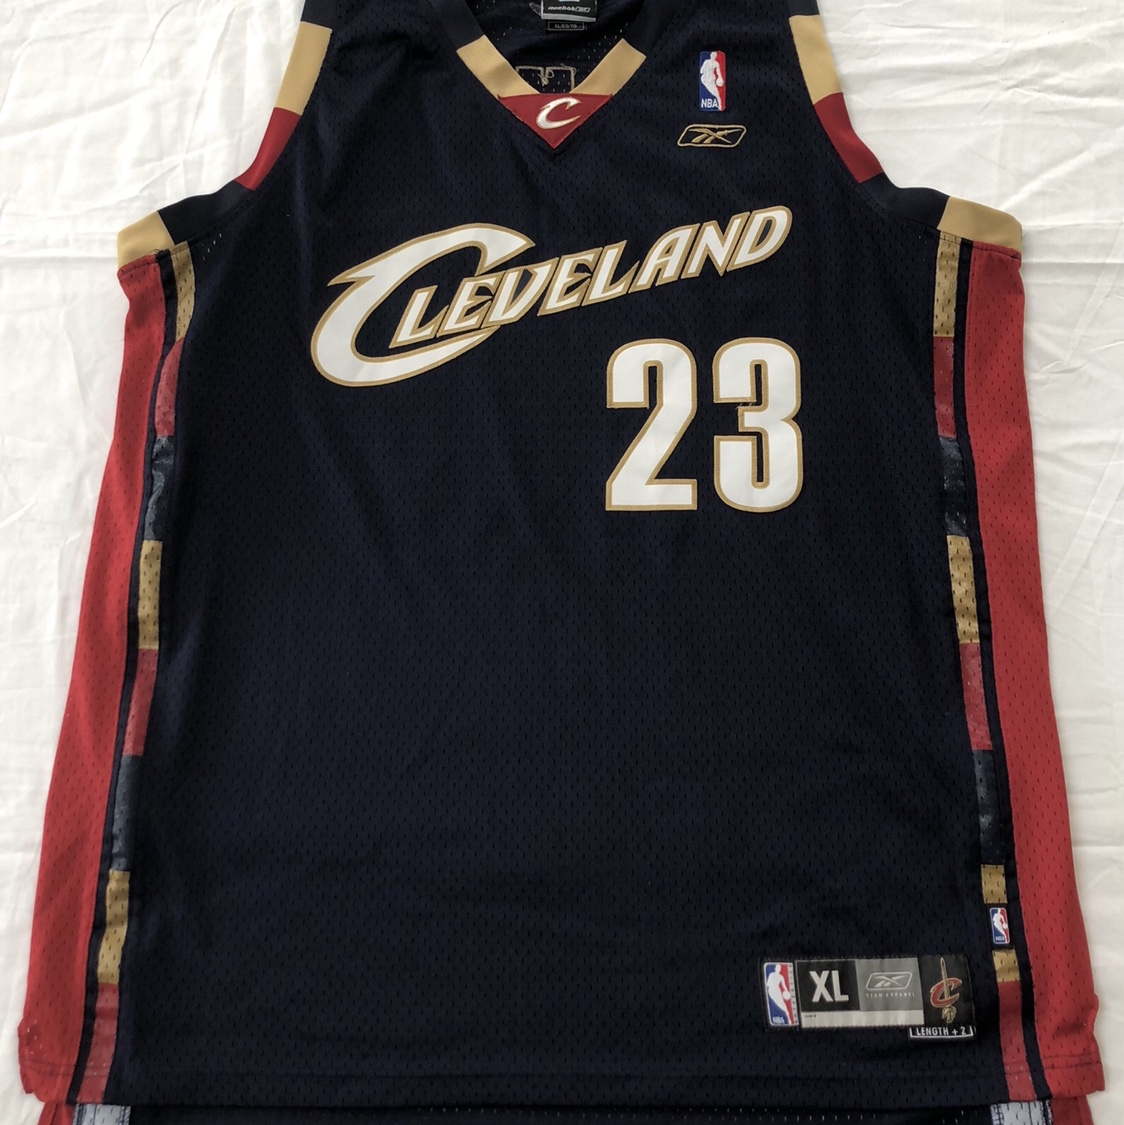 new product d824e 3bc88 Cleveland Cavaliers LEBRON JAMES jersey. From the ...